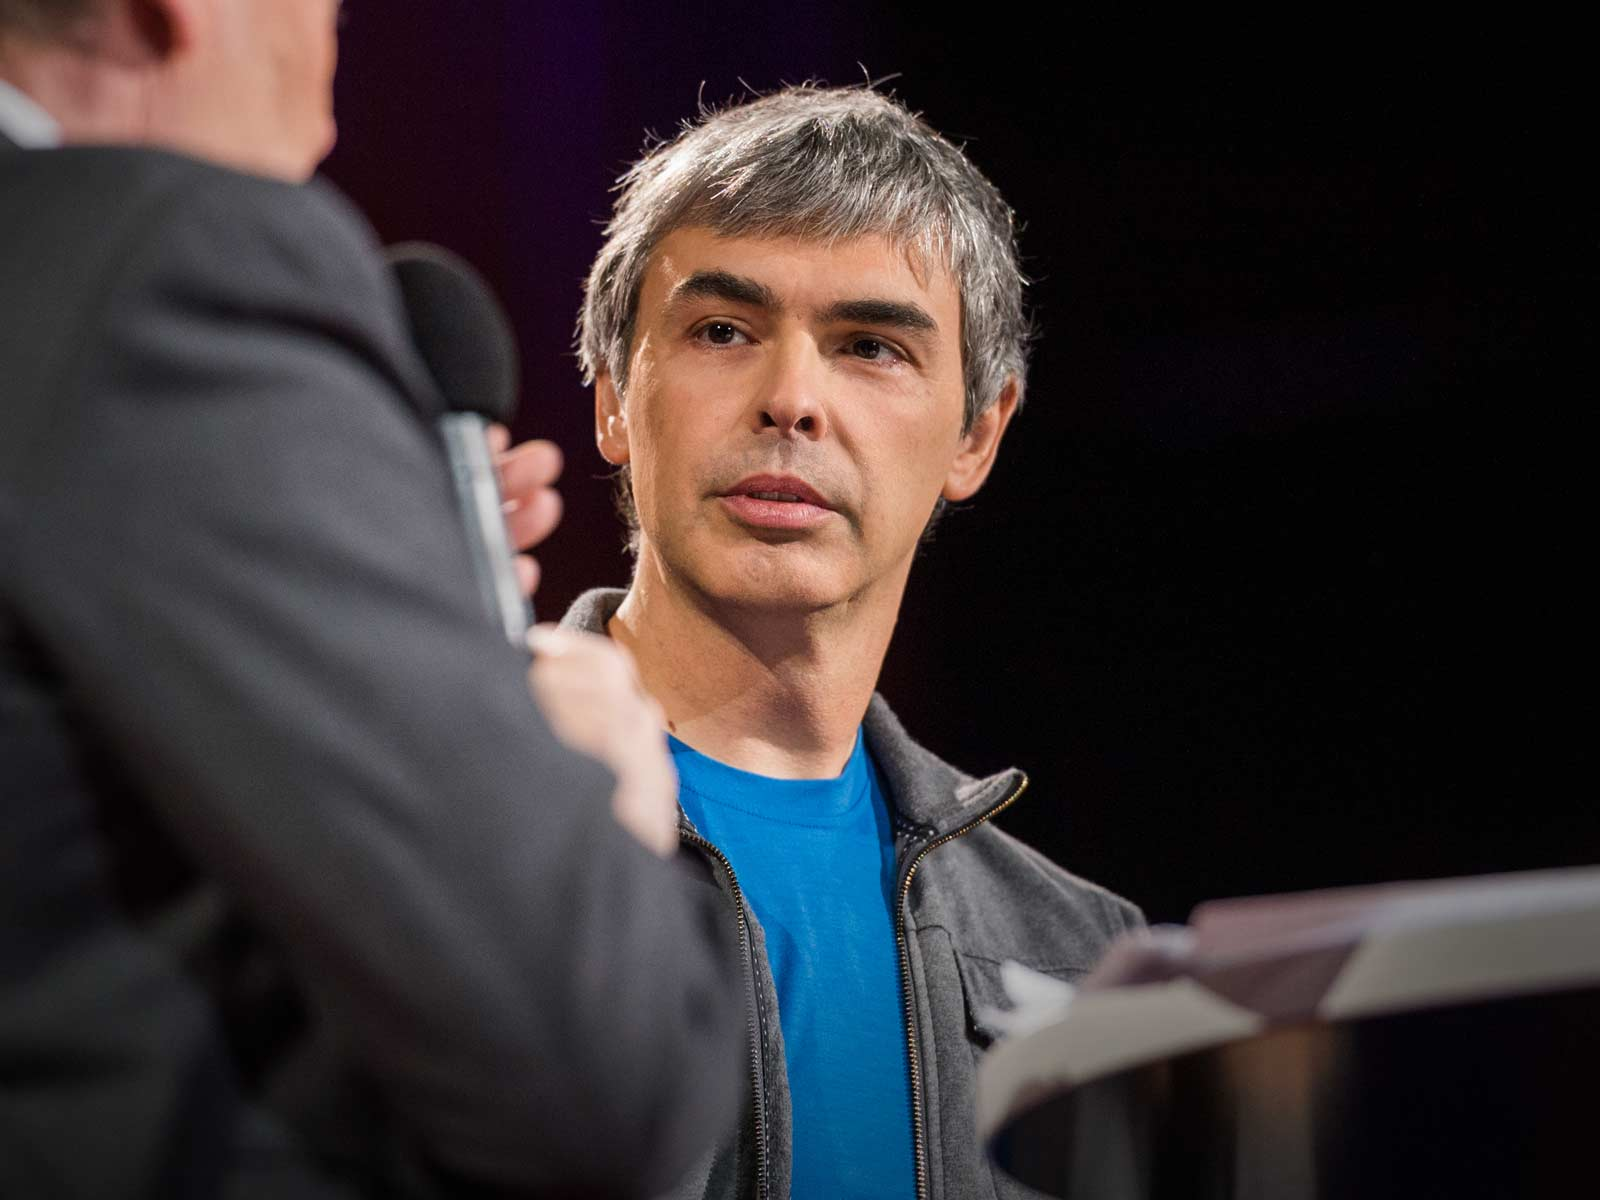 Google's Larry Page at TED talk